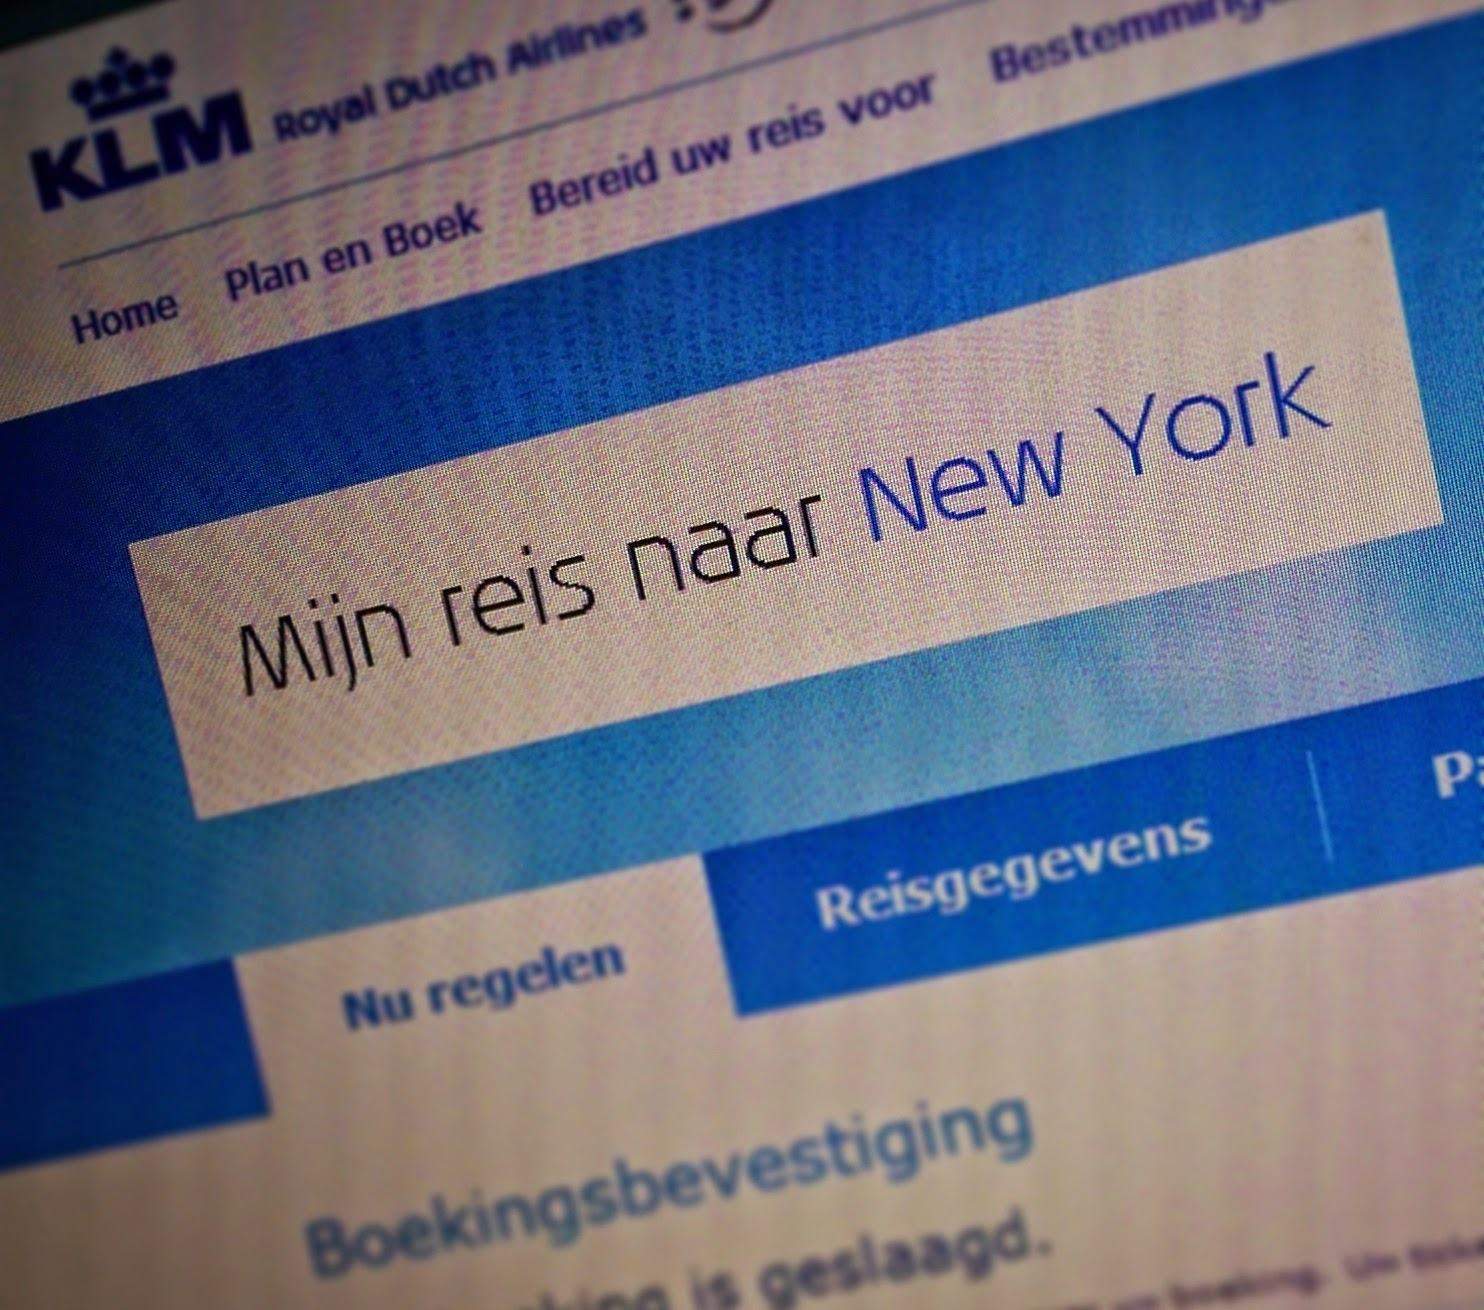 New York boekingsbevestiging